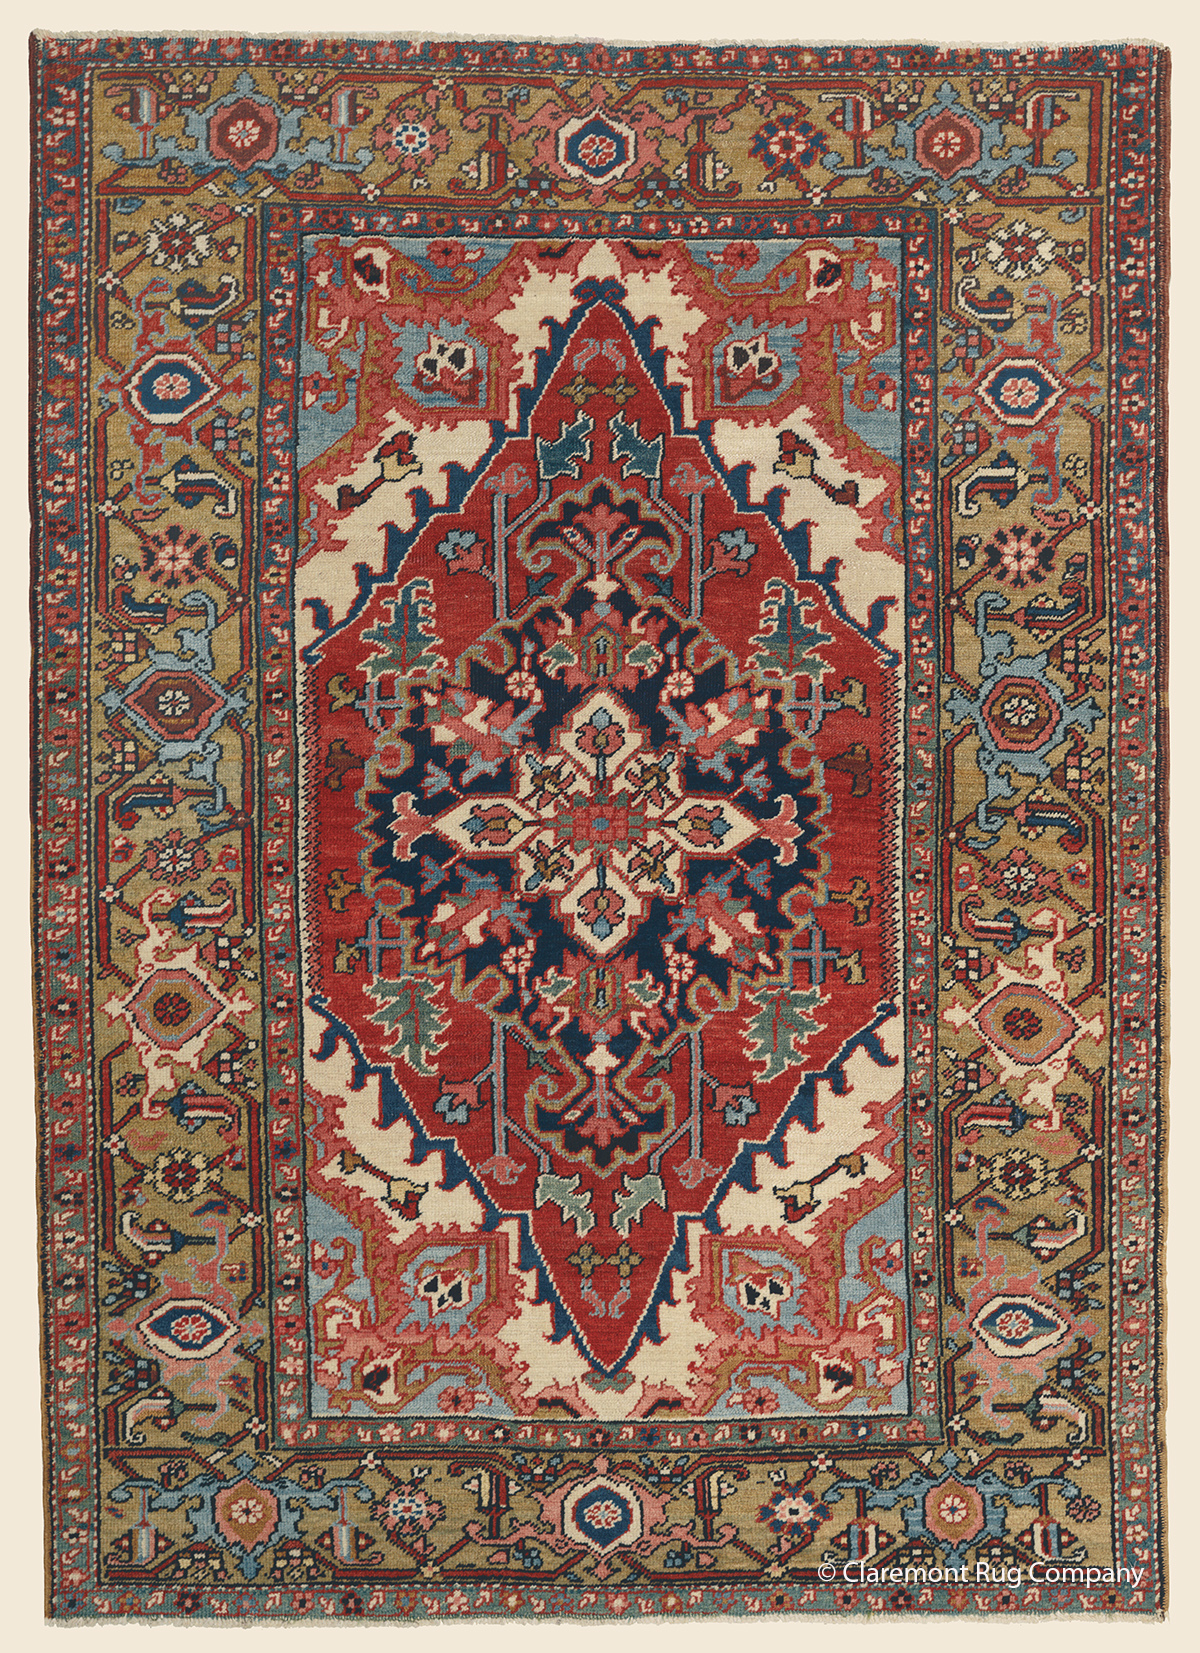 Circa 1900 Antique Persian Heriz  area size carpet with stylized floral design 4ft x 6ft